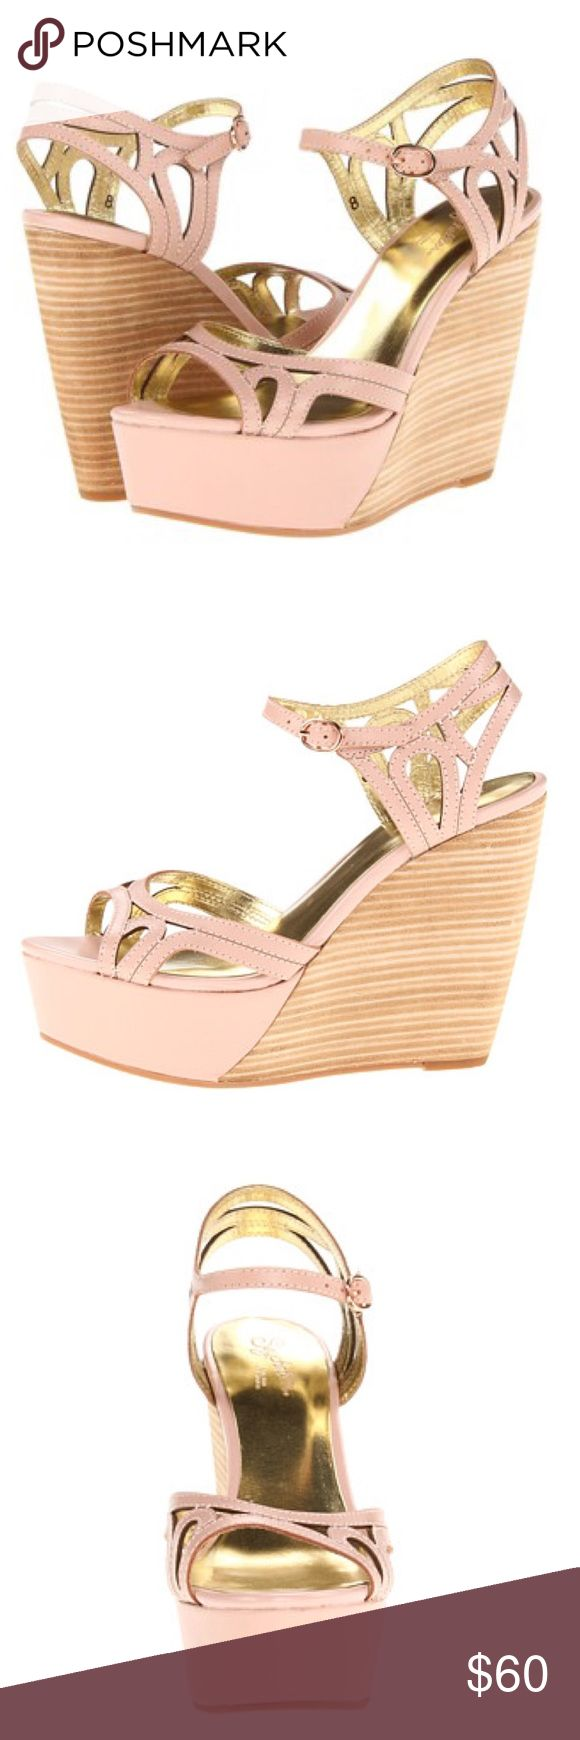 BEAUTIFUL WEDGES FROM SEYCHELLES SHOES. Size 8. EXCELLENT CONDITION! Worn only one time. AS NEW. 5 inches. Seychelles Shoes Wedges